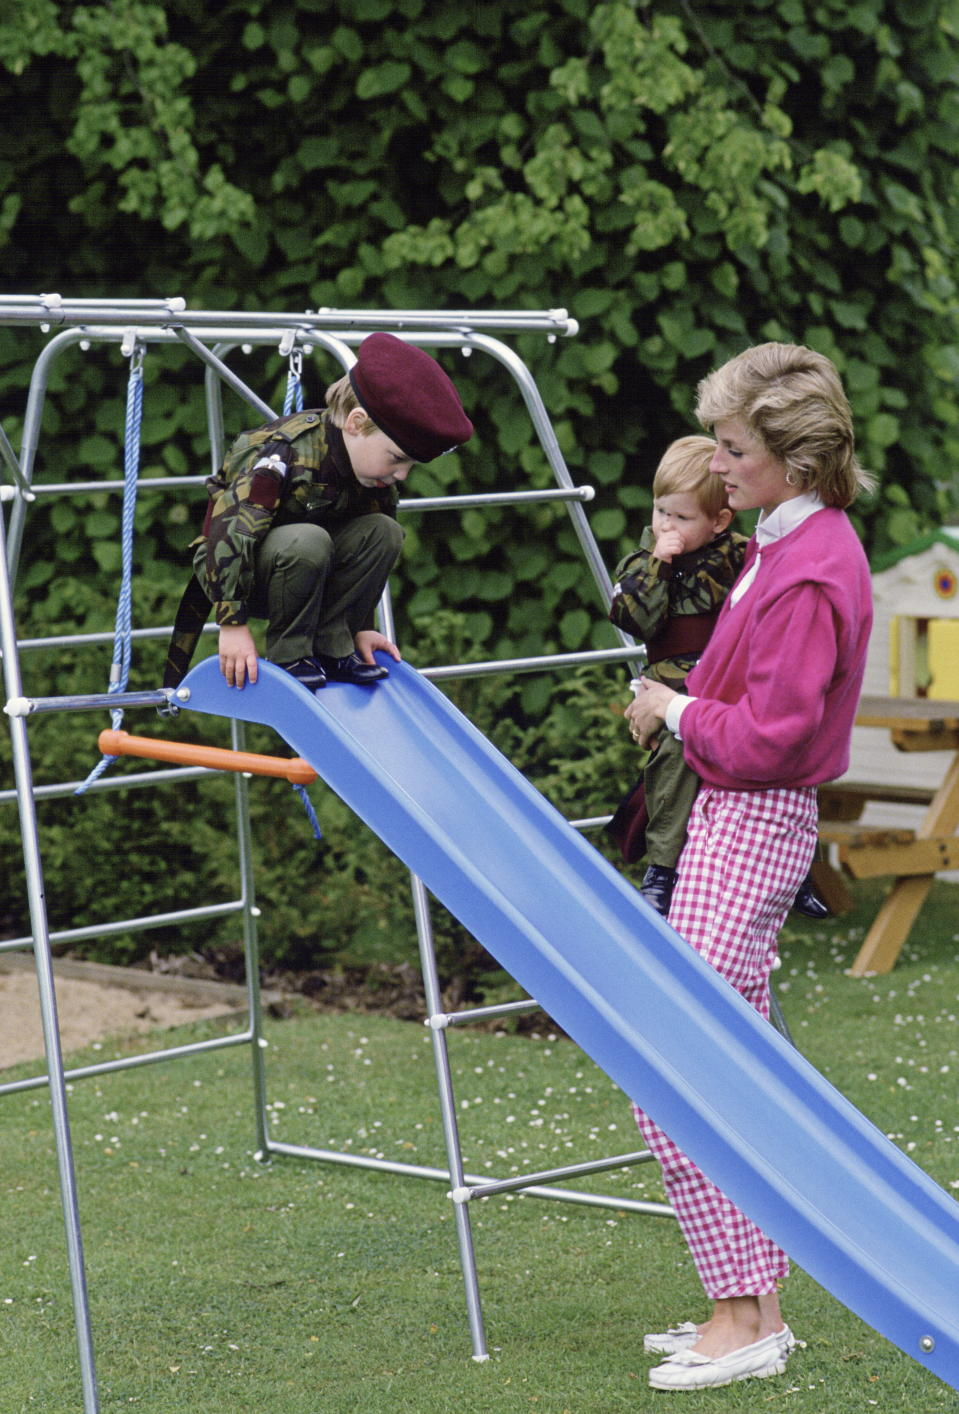 TETBURY, UNITED KINGDOM - JULY 18:  Princess Diana With Her Sons, William And Harry As They Play On A Slide In The Grounds Of Highgrove.  (Photo by Tim Graham Photo Library via Getty Images)